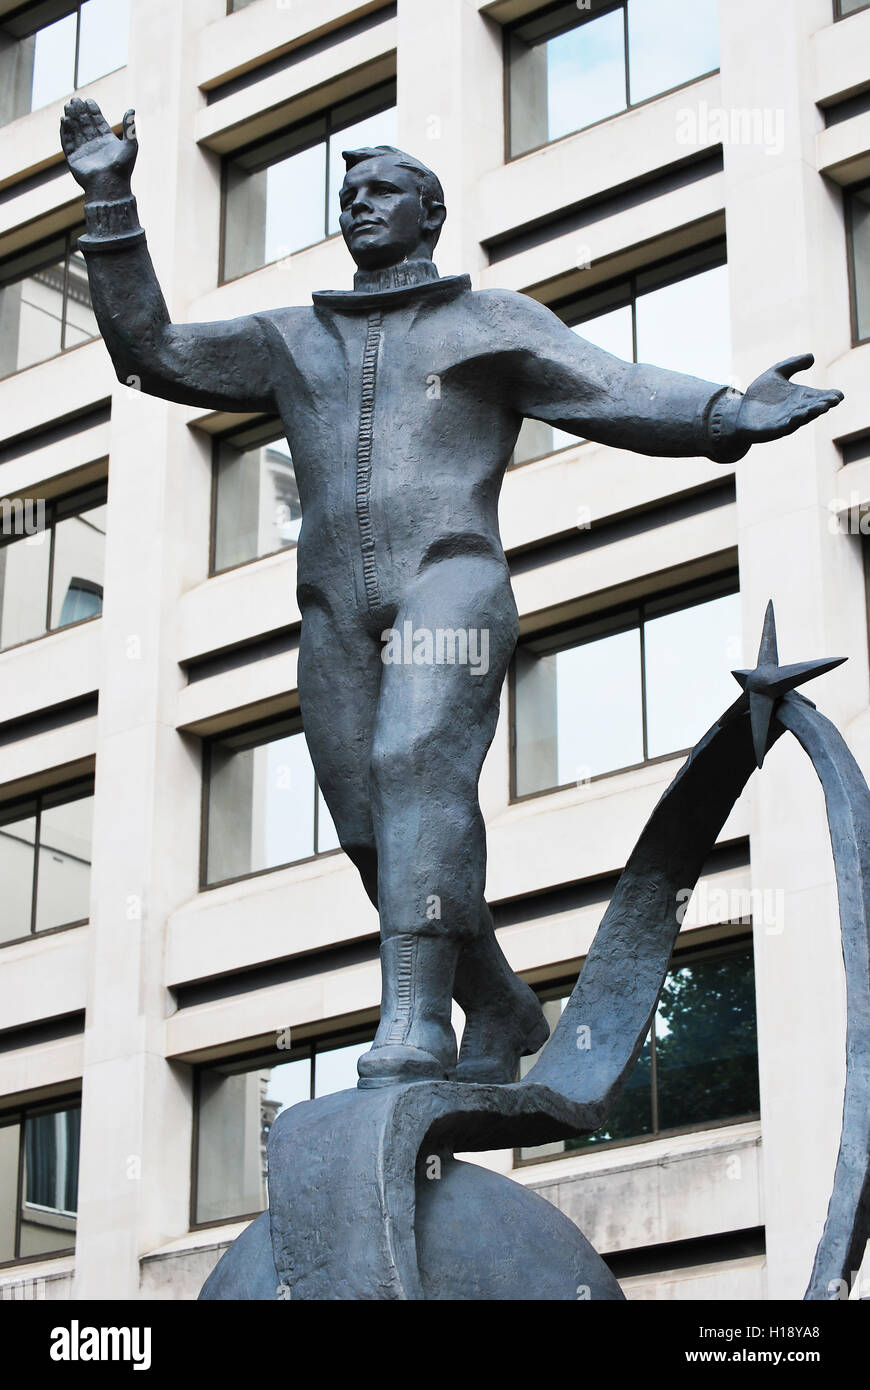 LONDON - AUG 4TH 2012: A statue of Yuri Gagarin in London. Gagarin was a Soviet pilot and cosmonaut and the first - Stock Image